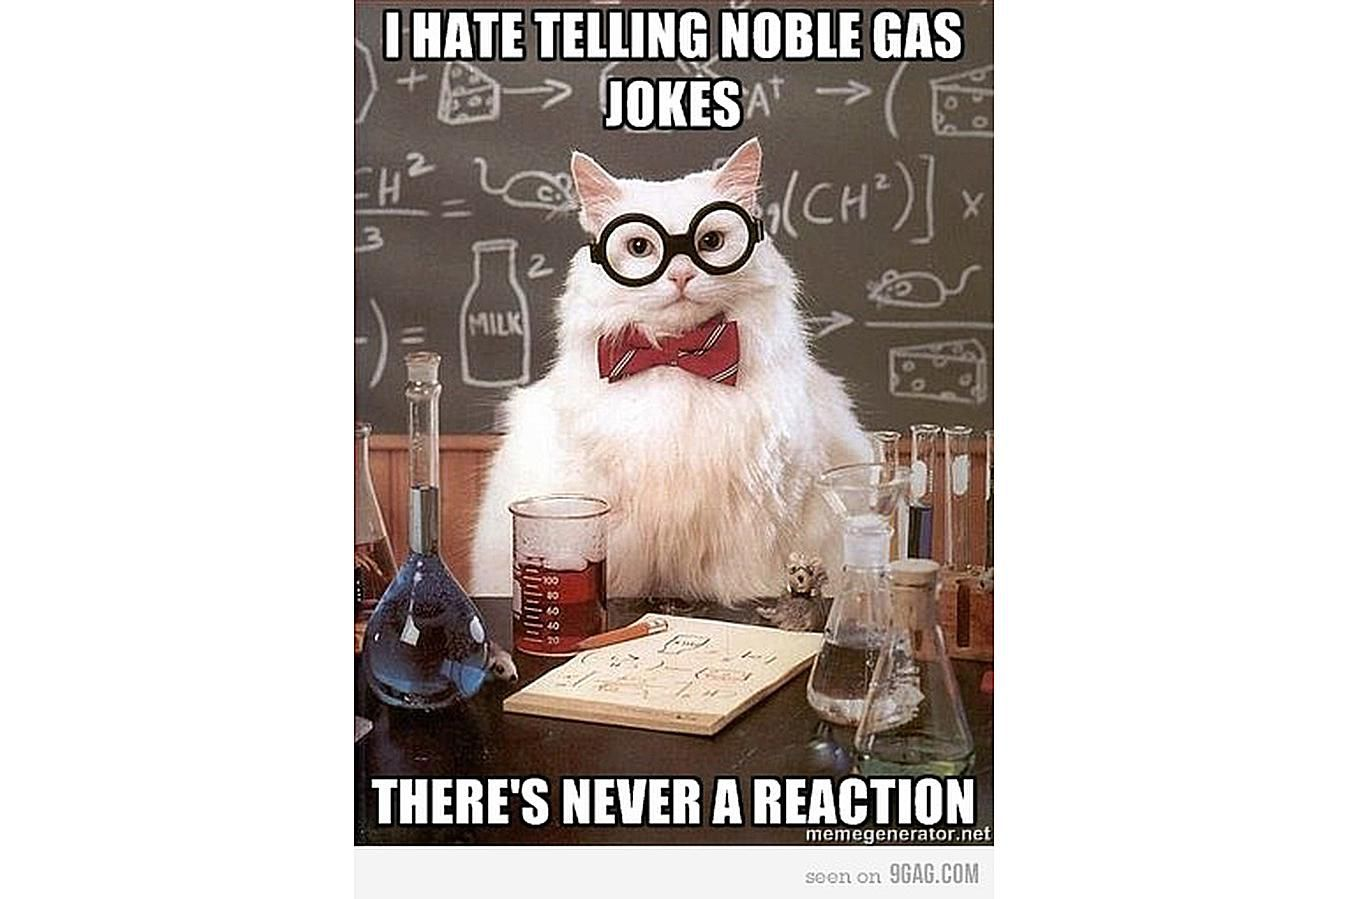 Chemistry Cat gets no reaction from noble gas jokes.